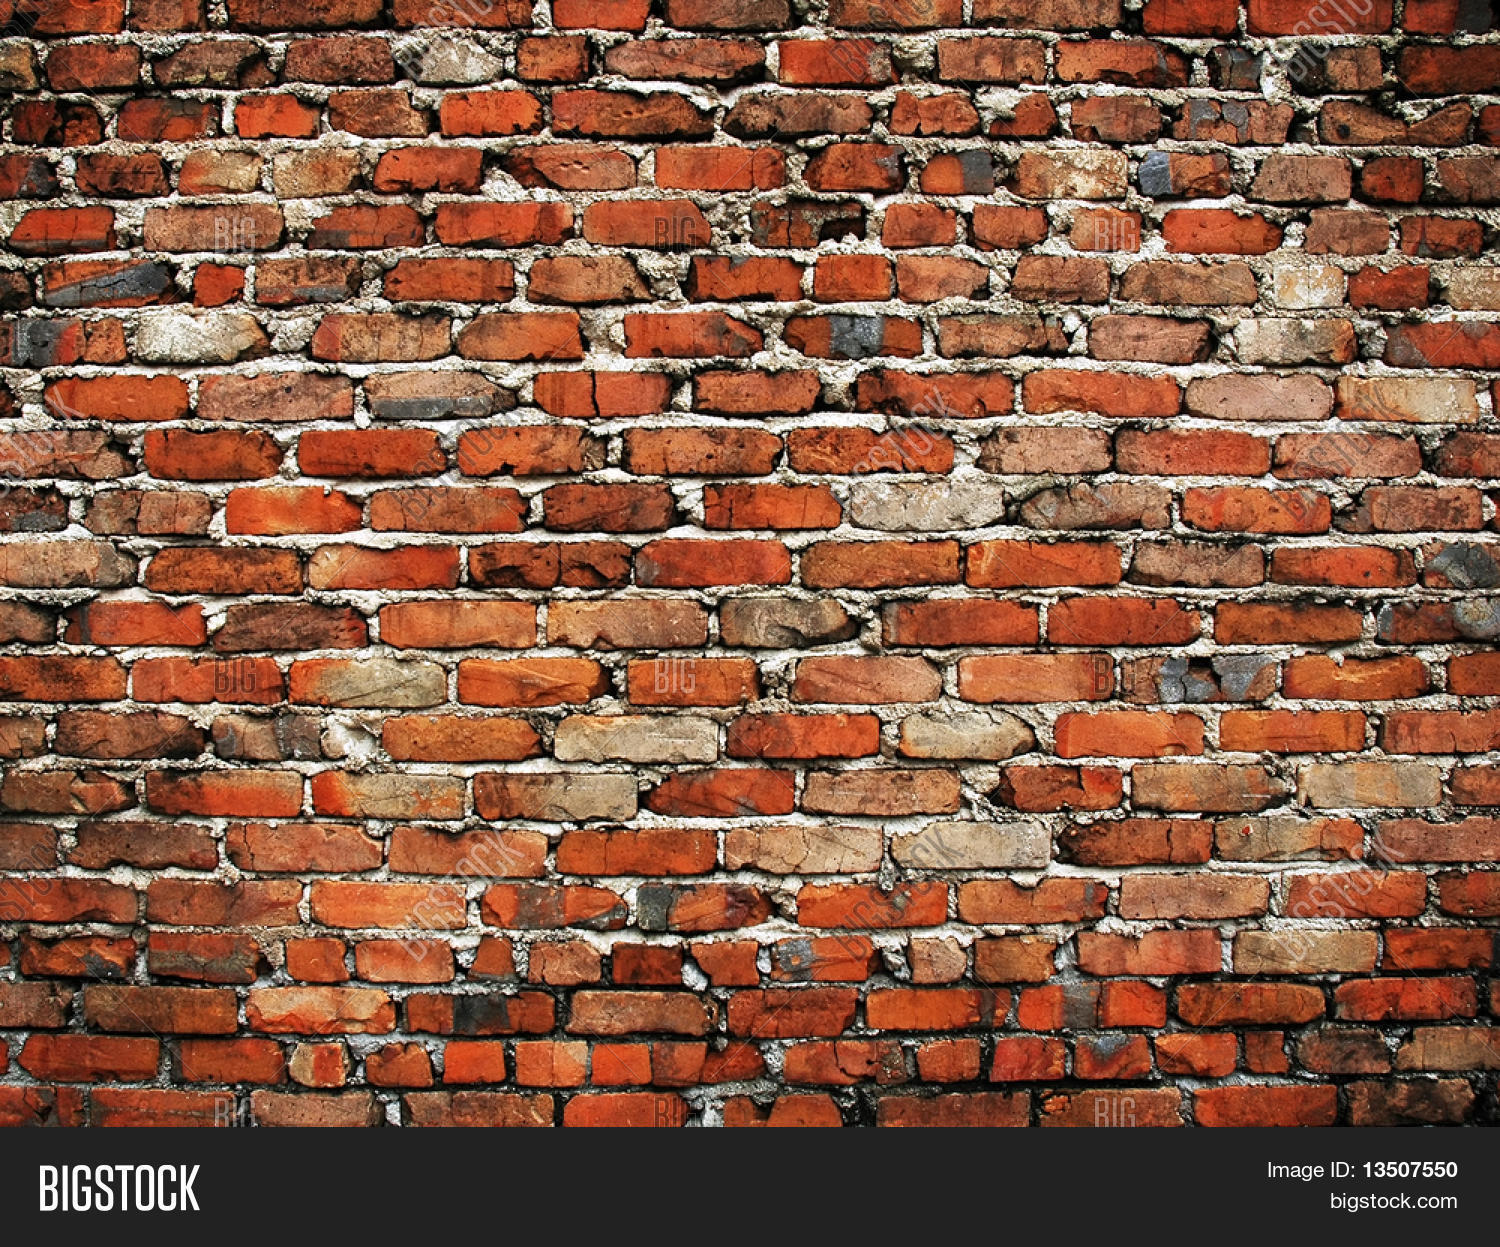 Imagen y foto fondo de pared de ladrillo antiguo bigstock - Pared de ladrillo ...